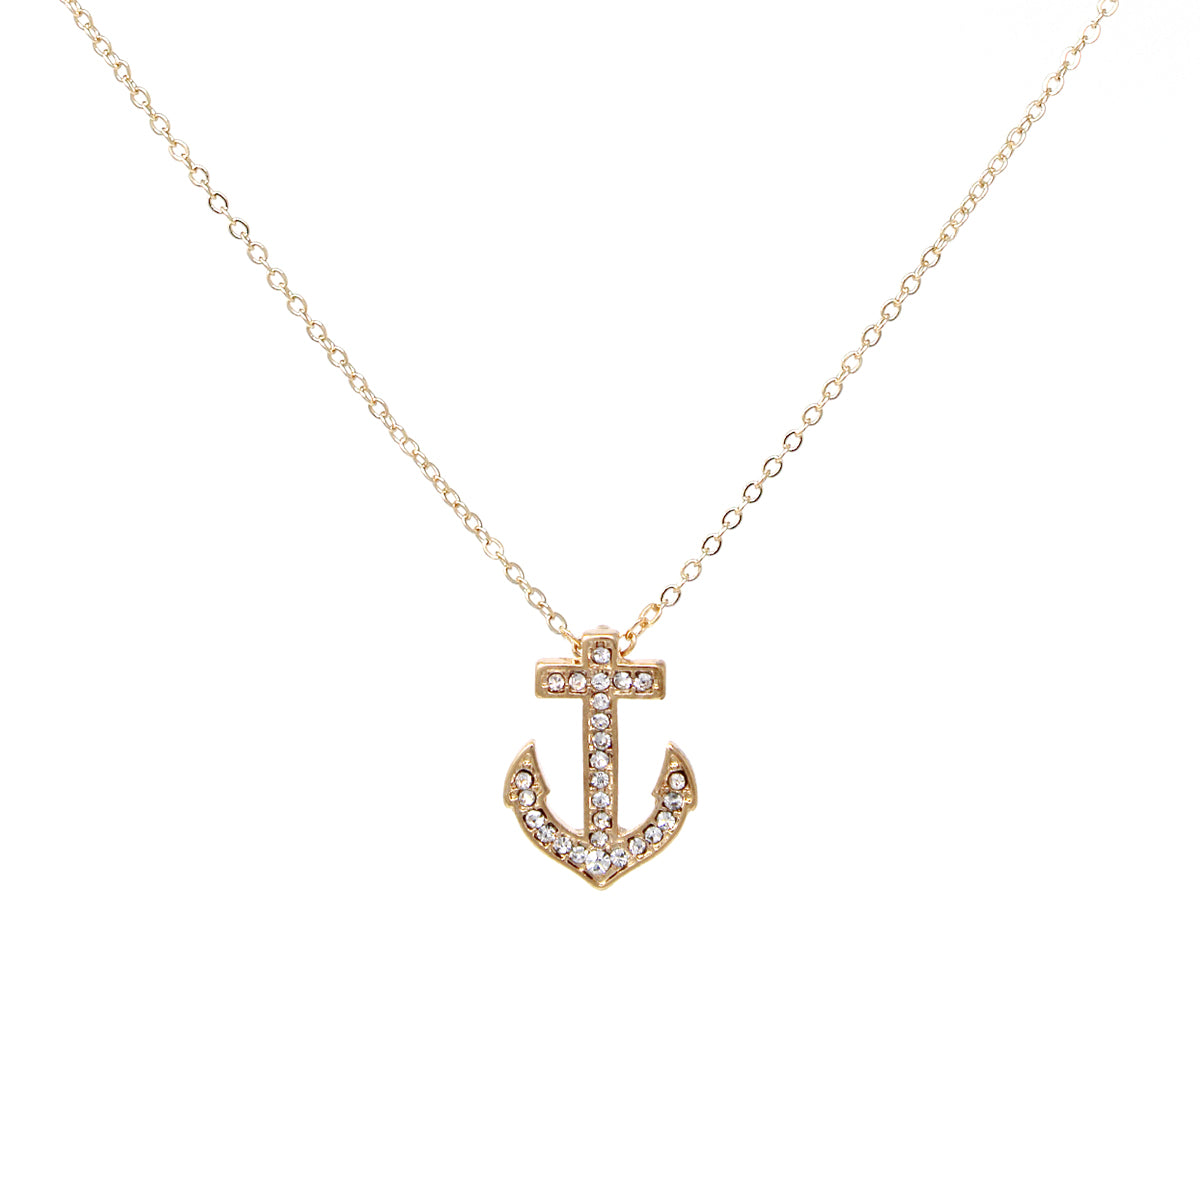 Rhinestone Pave Anchor Pendant Simple Chain Short Necklace